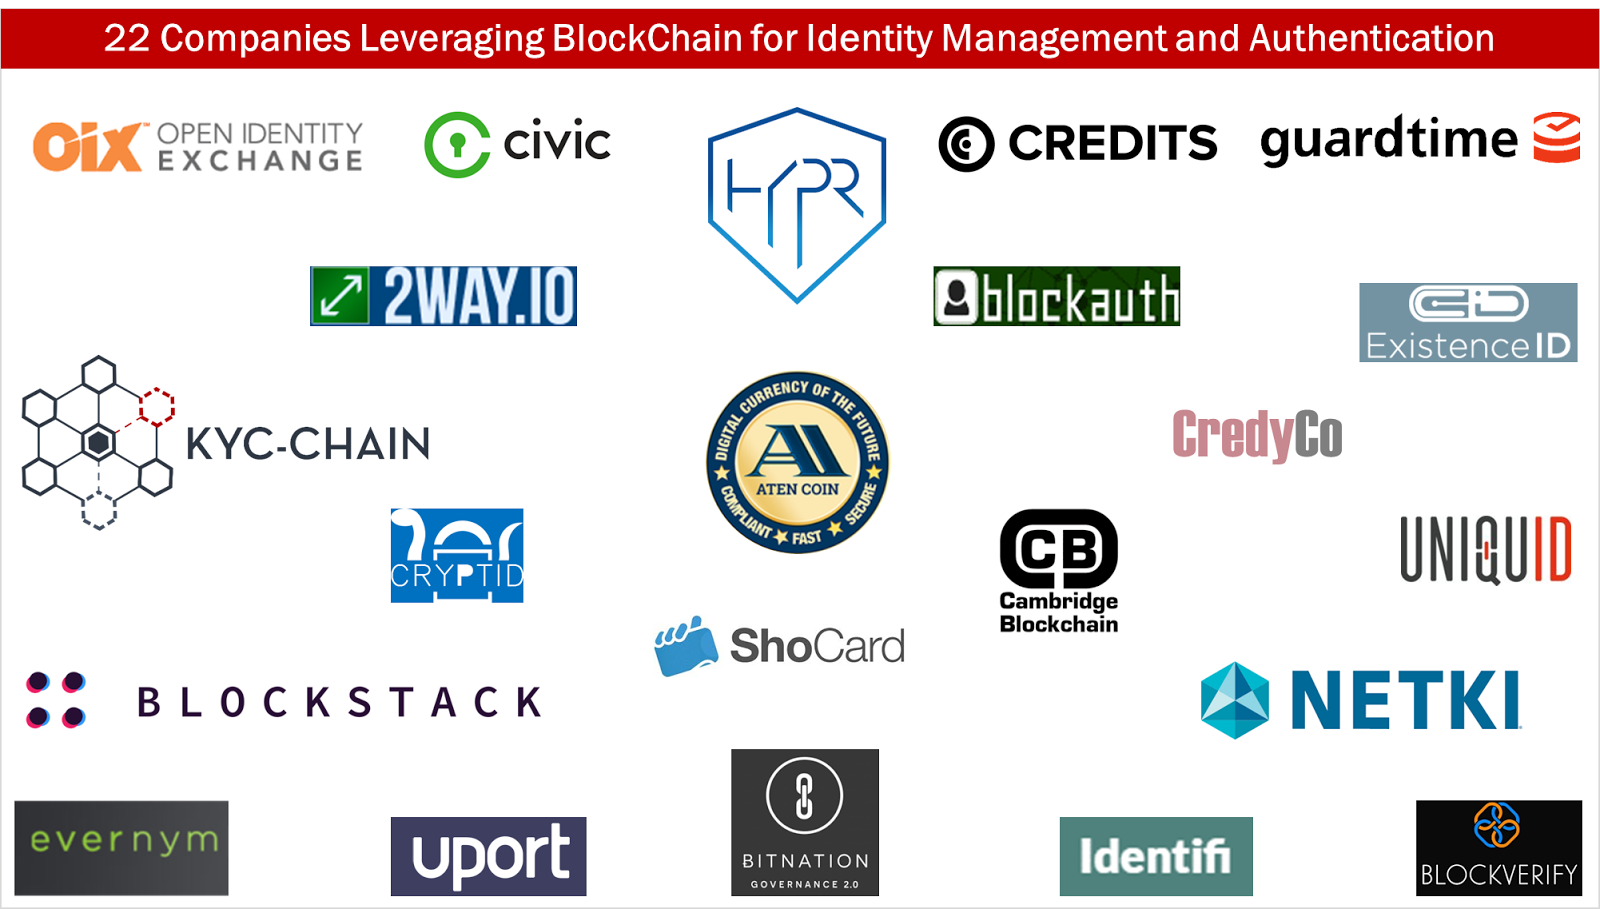 21 Companies Leveraging Blockchain for Identity Management and Authentication